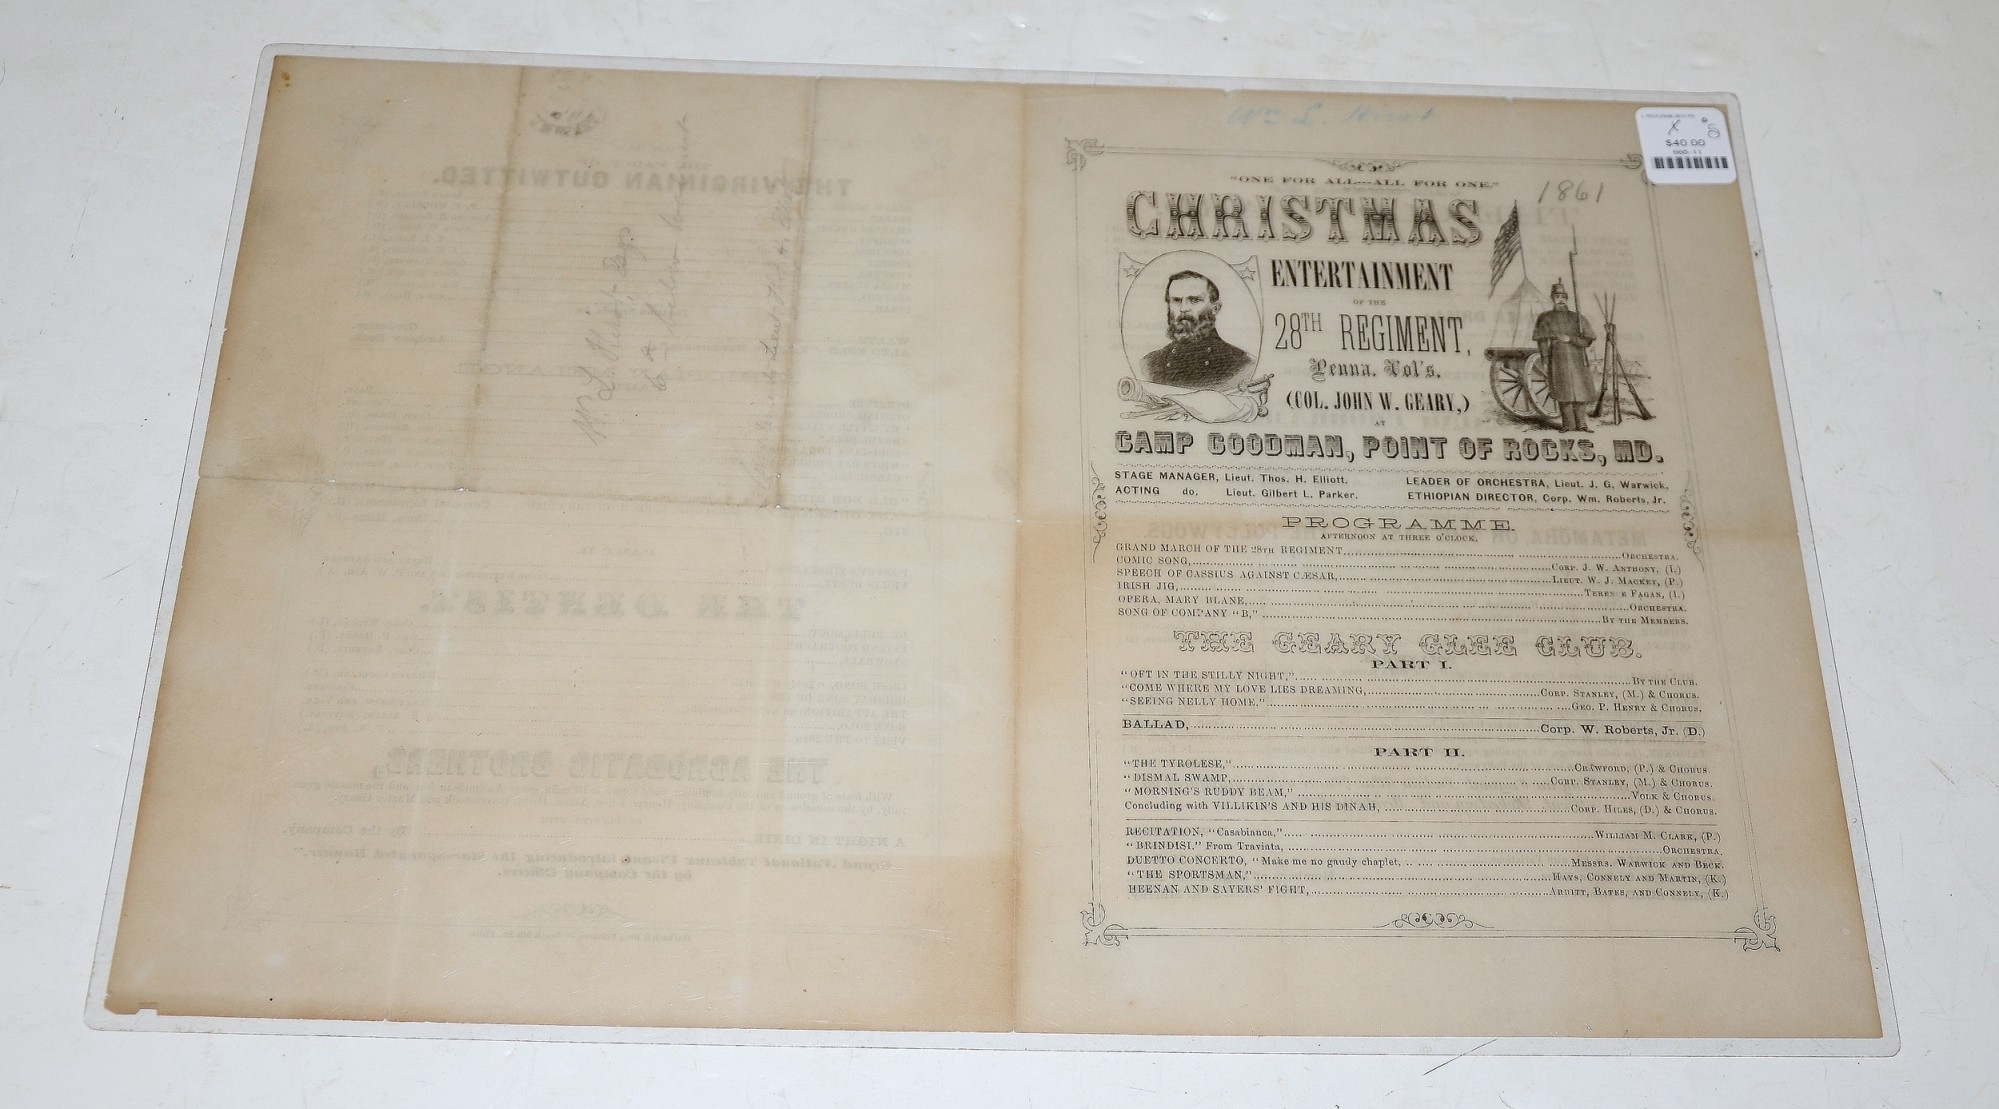 CHRISTMAS PROGRAM FROM 28TH PENNSYLVANIA, 1861